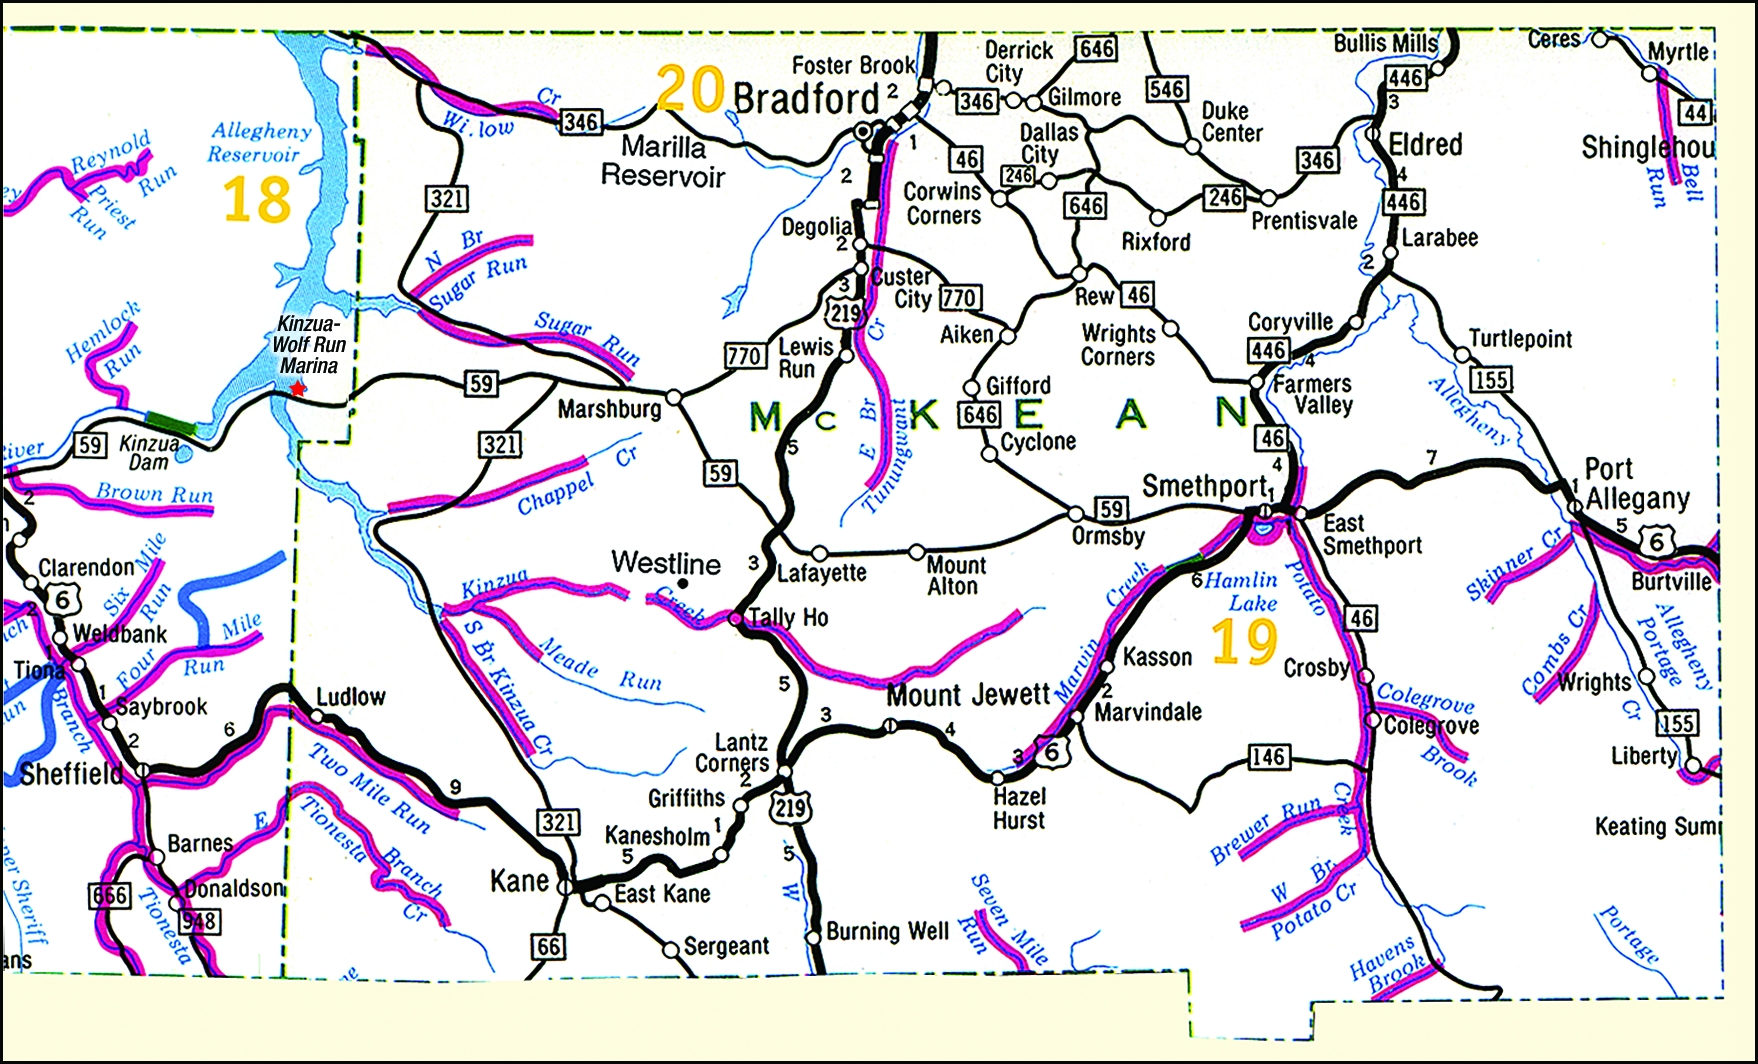 Download Maps Guides Allegheny National Forest Kinzua